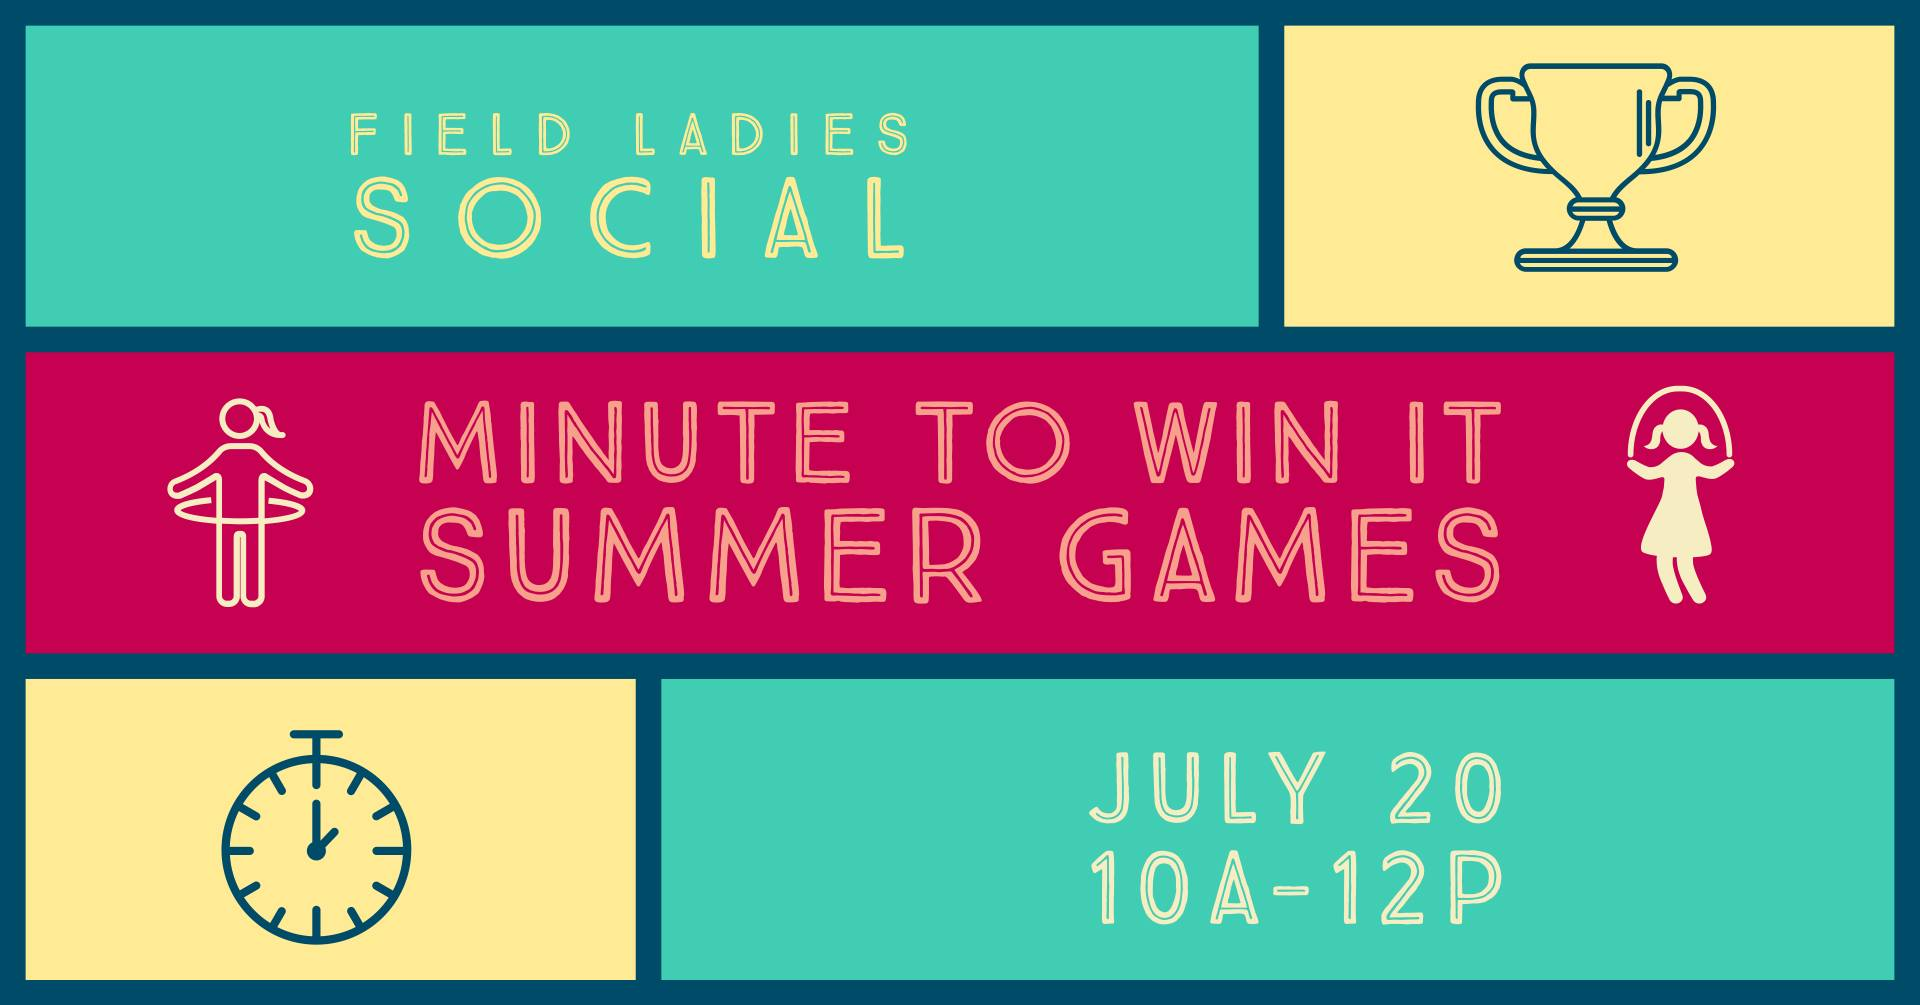 Women's Connection - Minute to Win It Summer Games